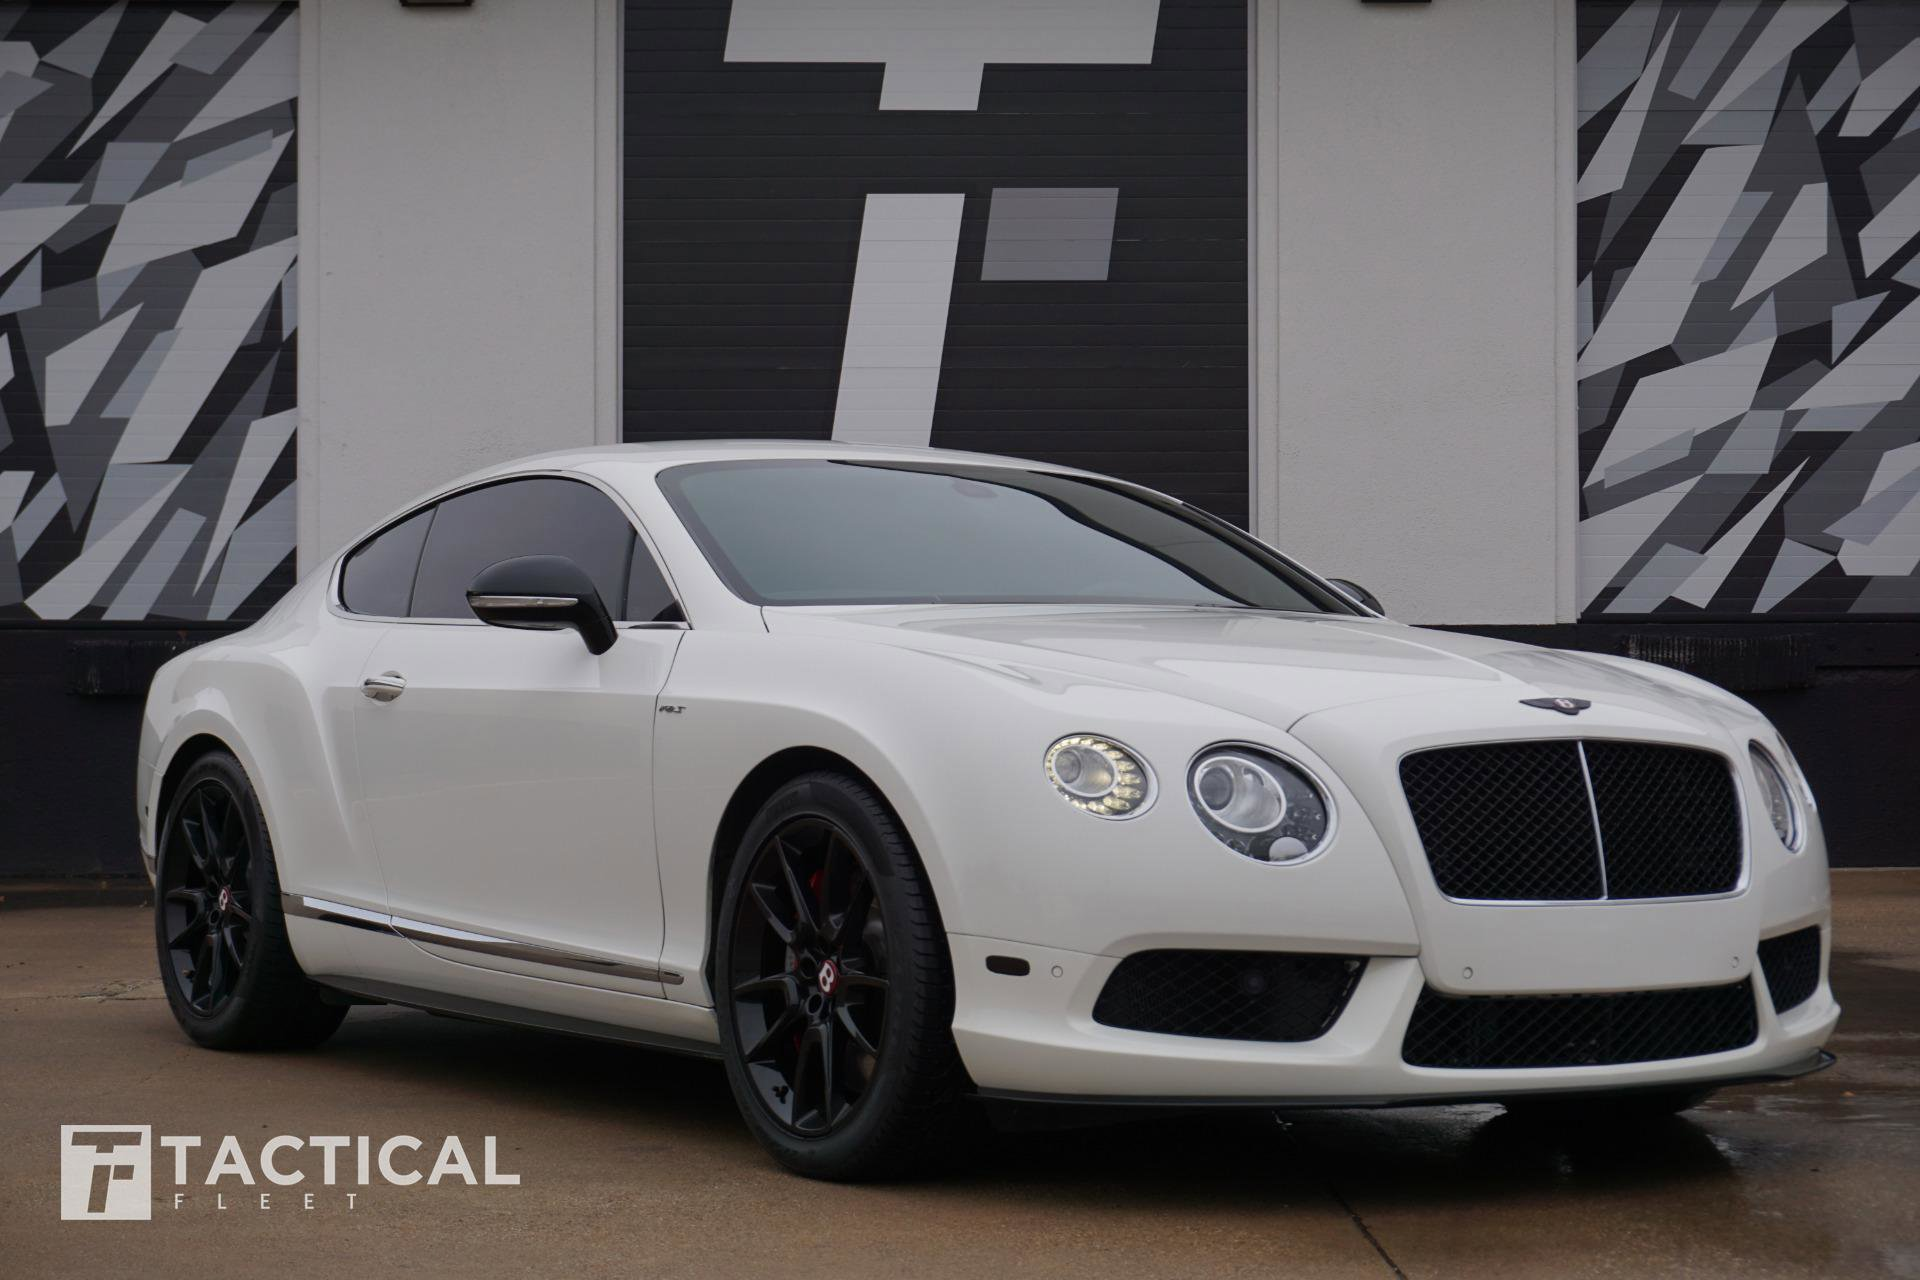 2014 Bentley Continental GT V8 S Coupe image